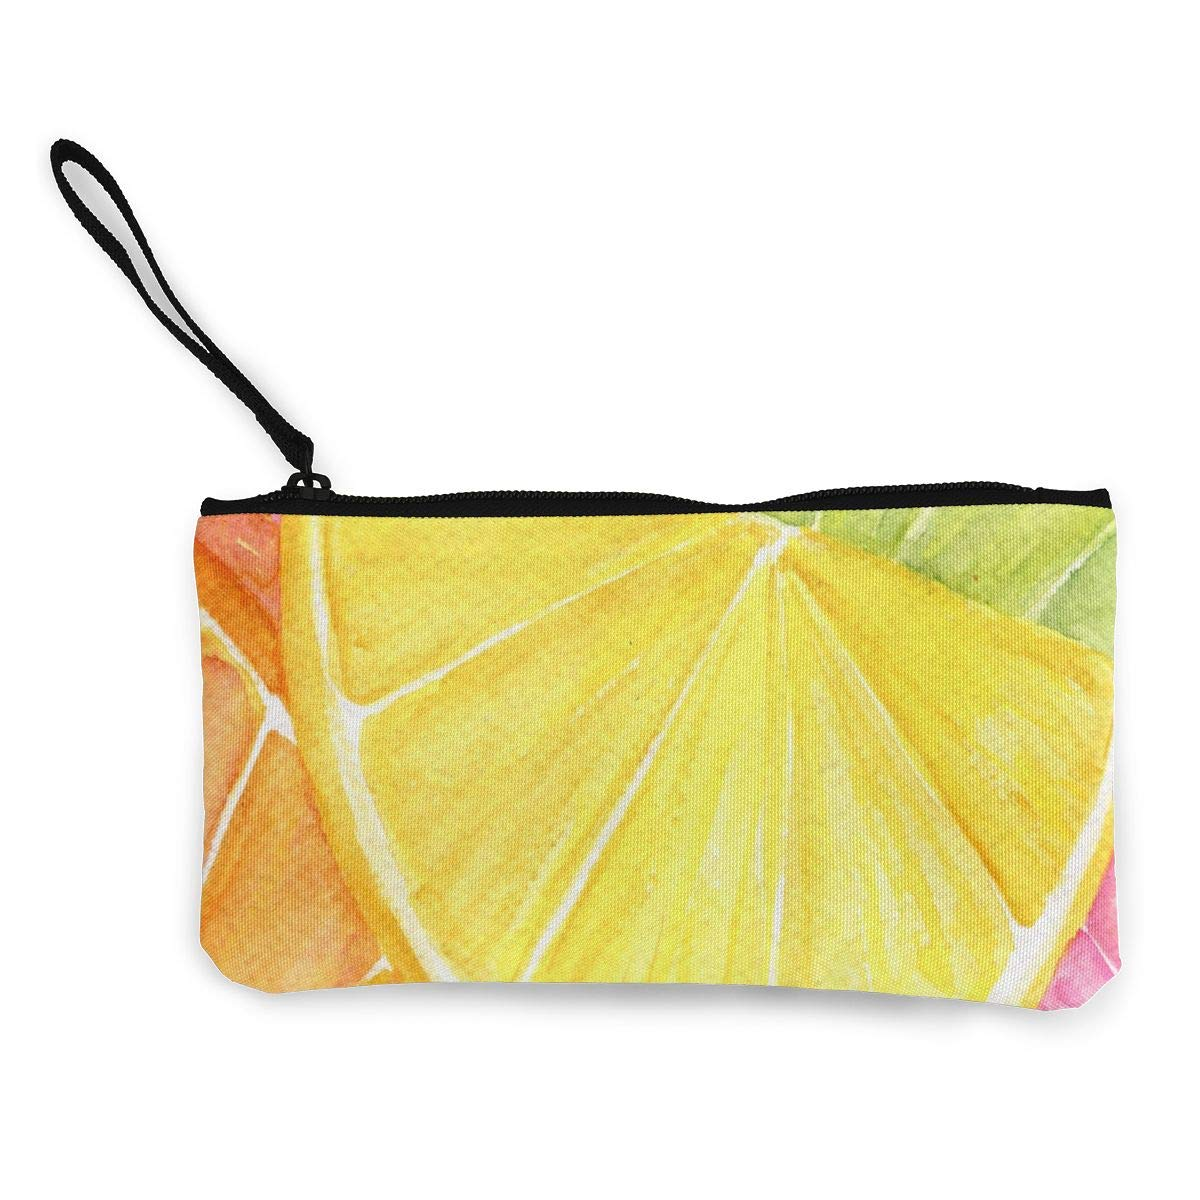 Coin Purse Lemon Watercolors Paintings Girl Zipper Canvas Wallets ChangeHot Case